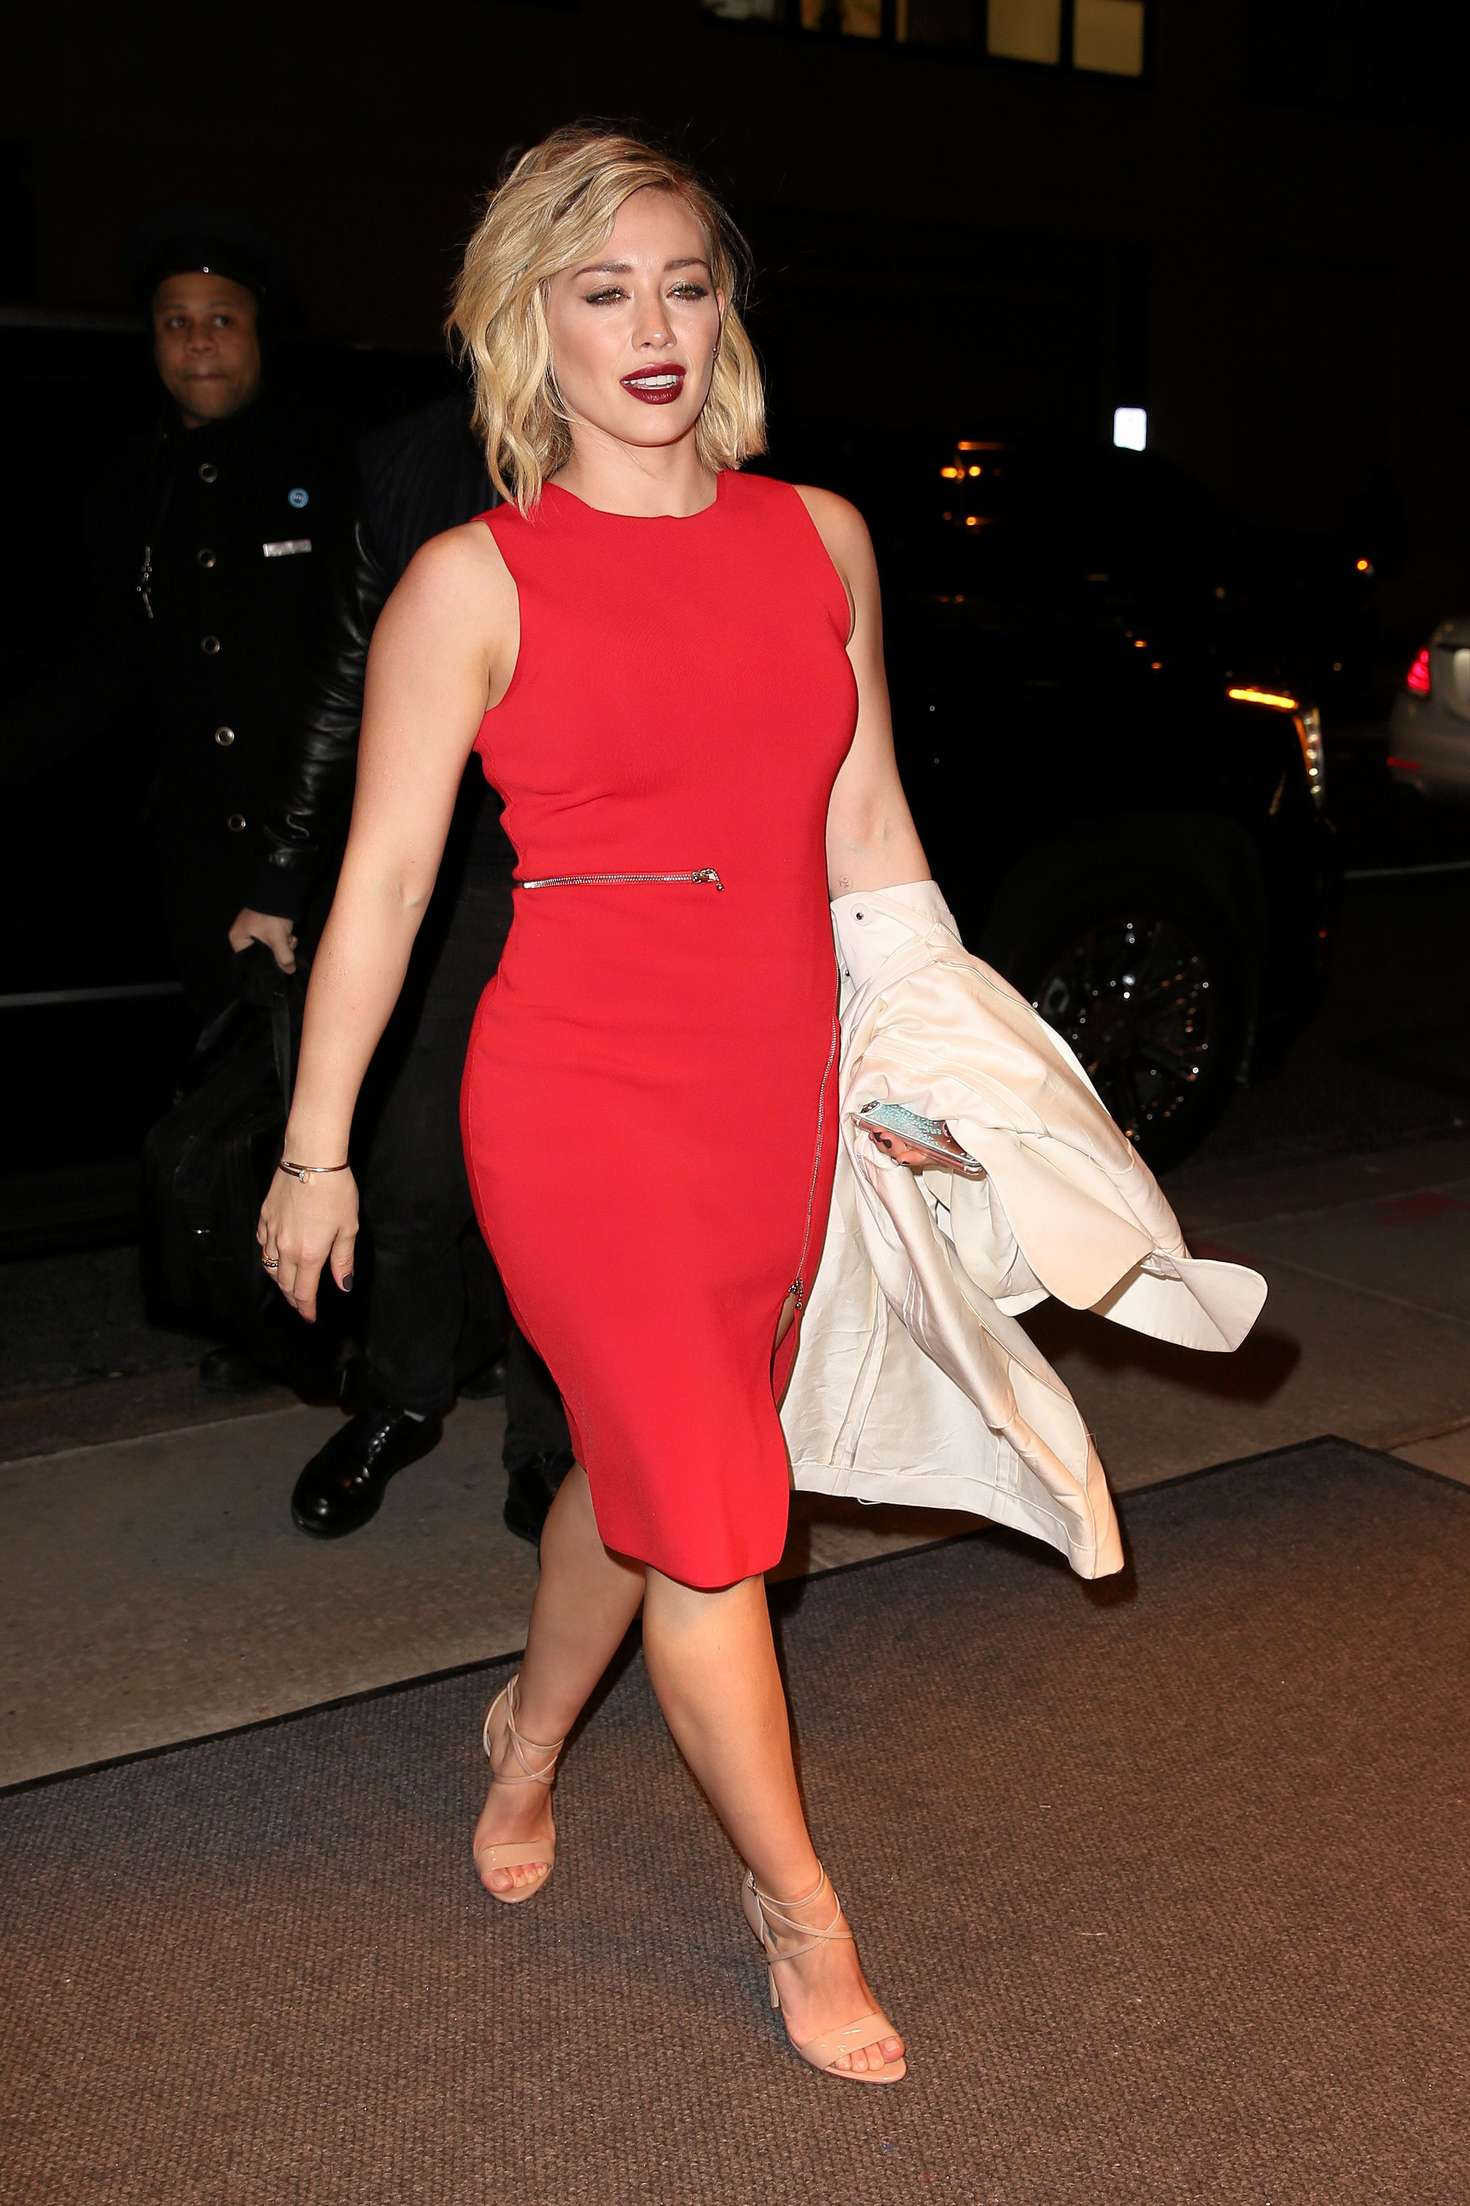 Hilary Duff In Red Dress Out In Soho